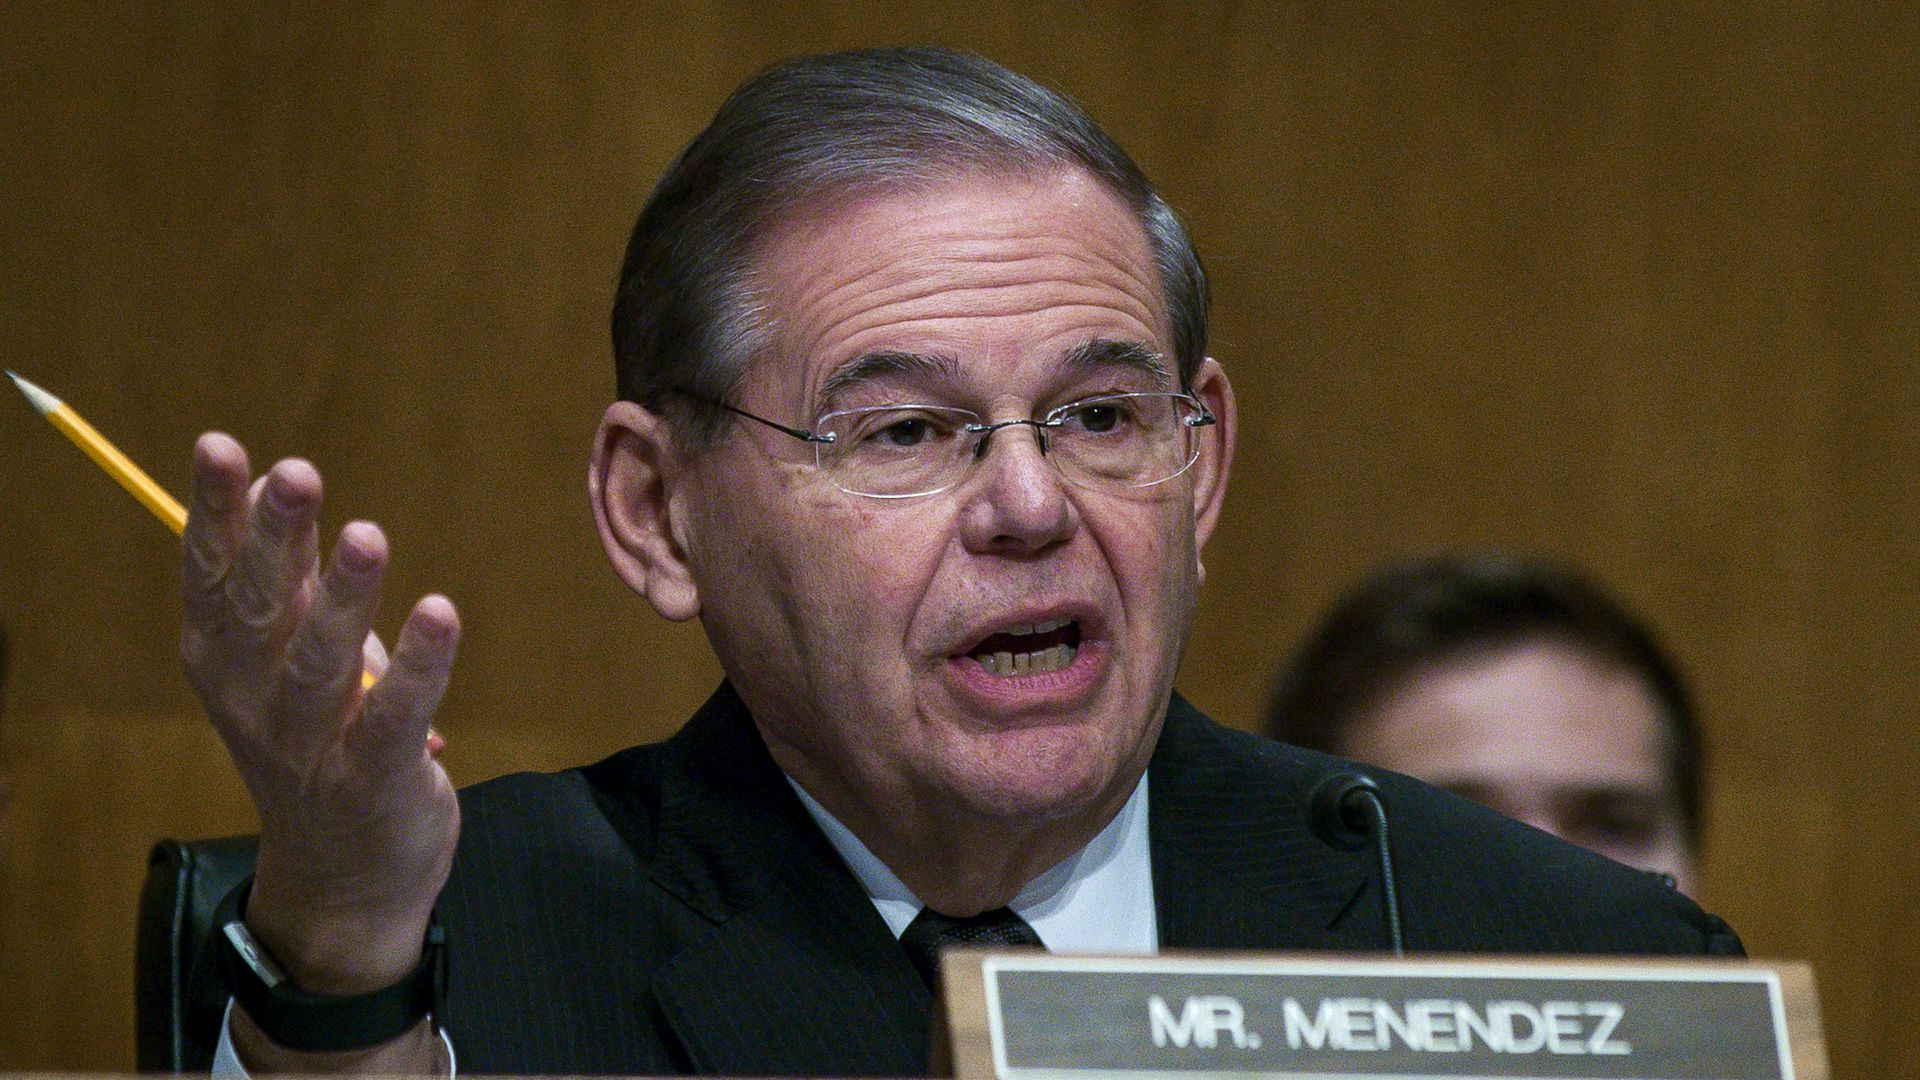 Bob Menendez (D-N.J.), ranking member of the Senate Foreign Relations Committee.